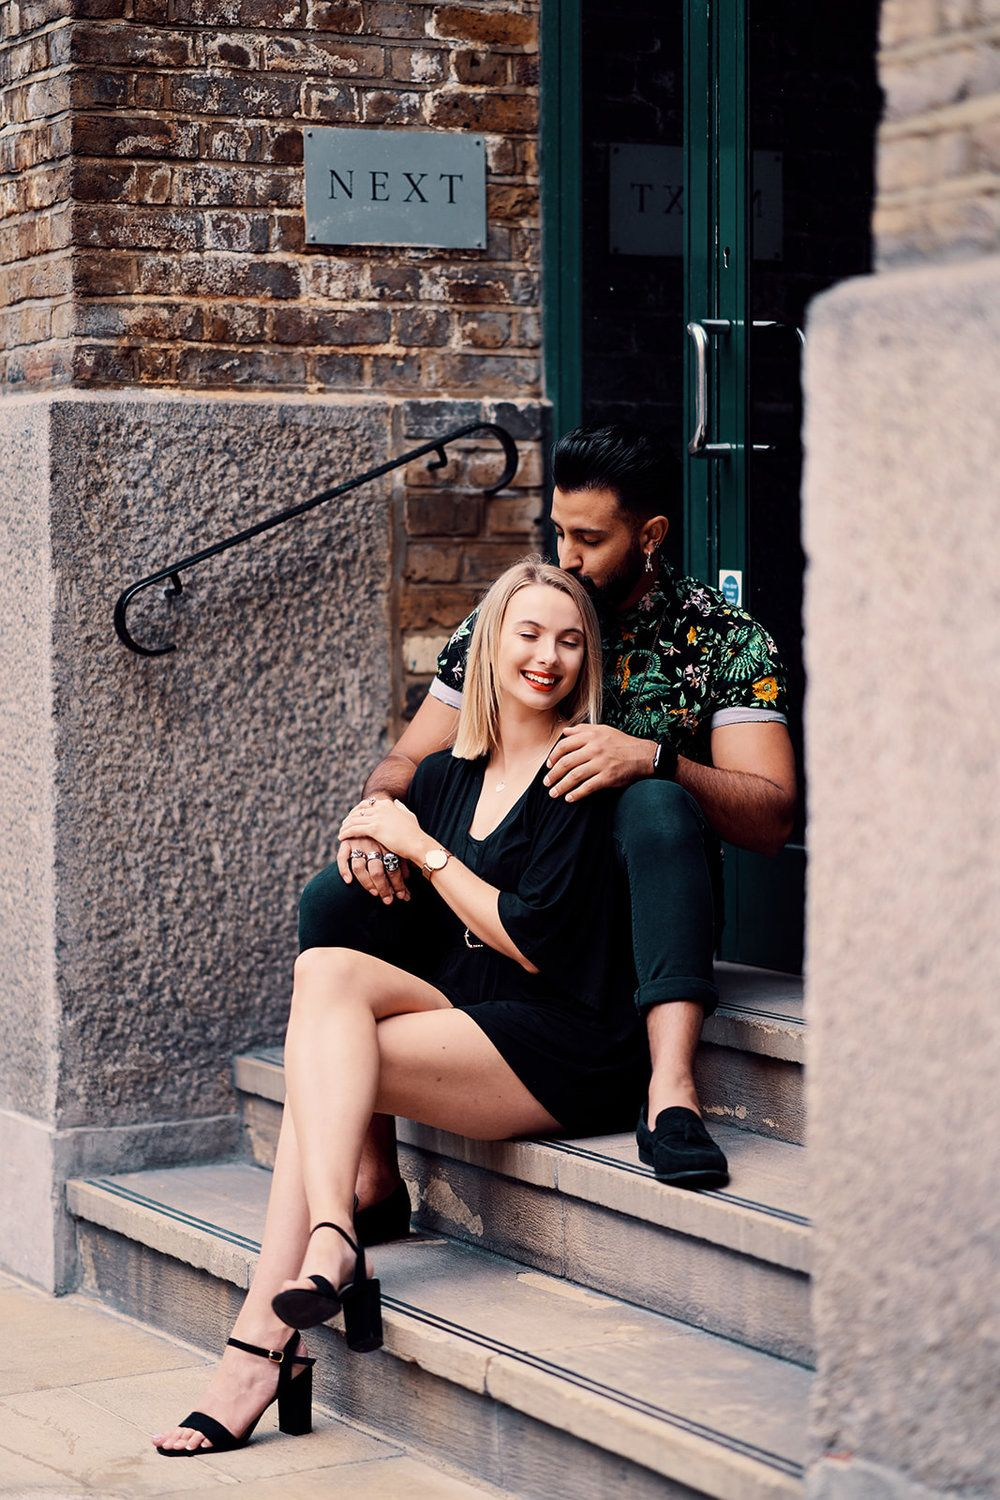 Best Place For Vacation Photo Shoot For Couples In London